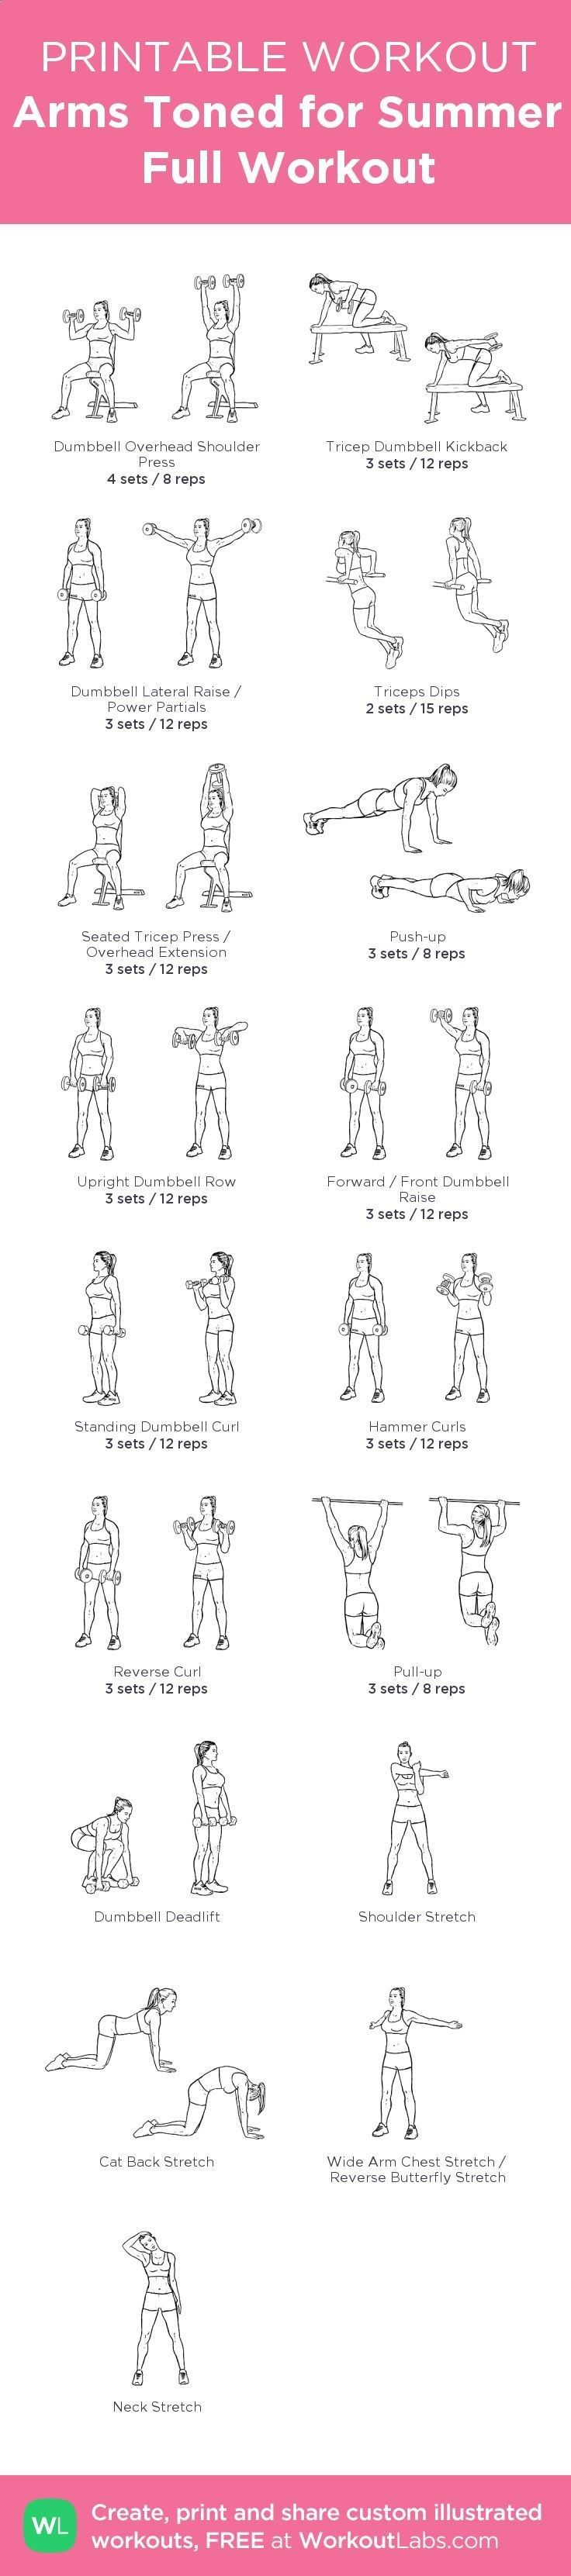 Arms Toned For Summer Full Workout My Custom Workout Created